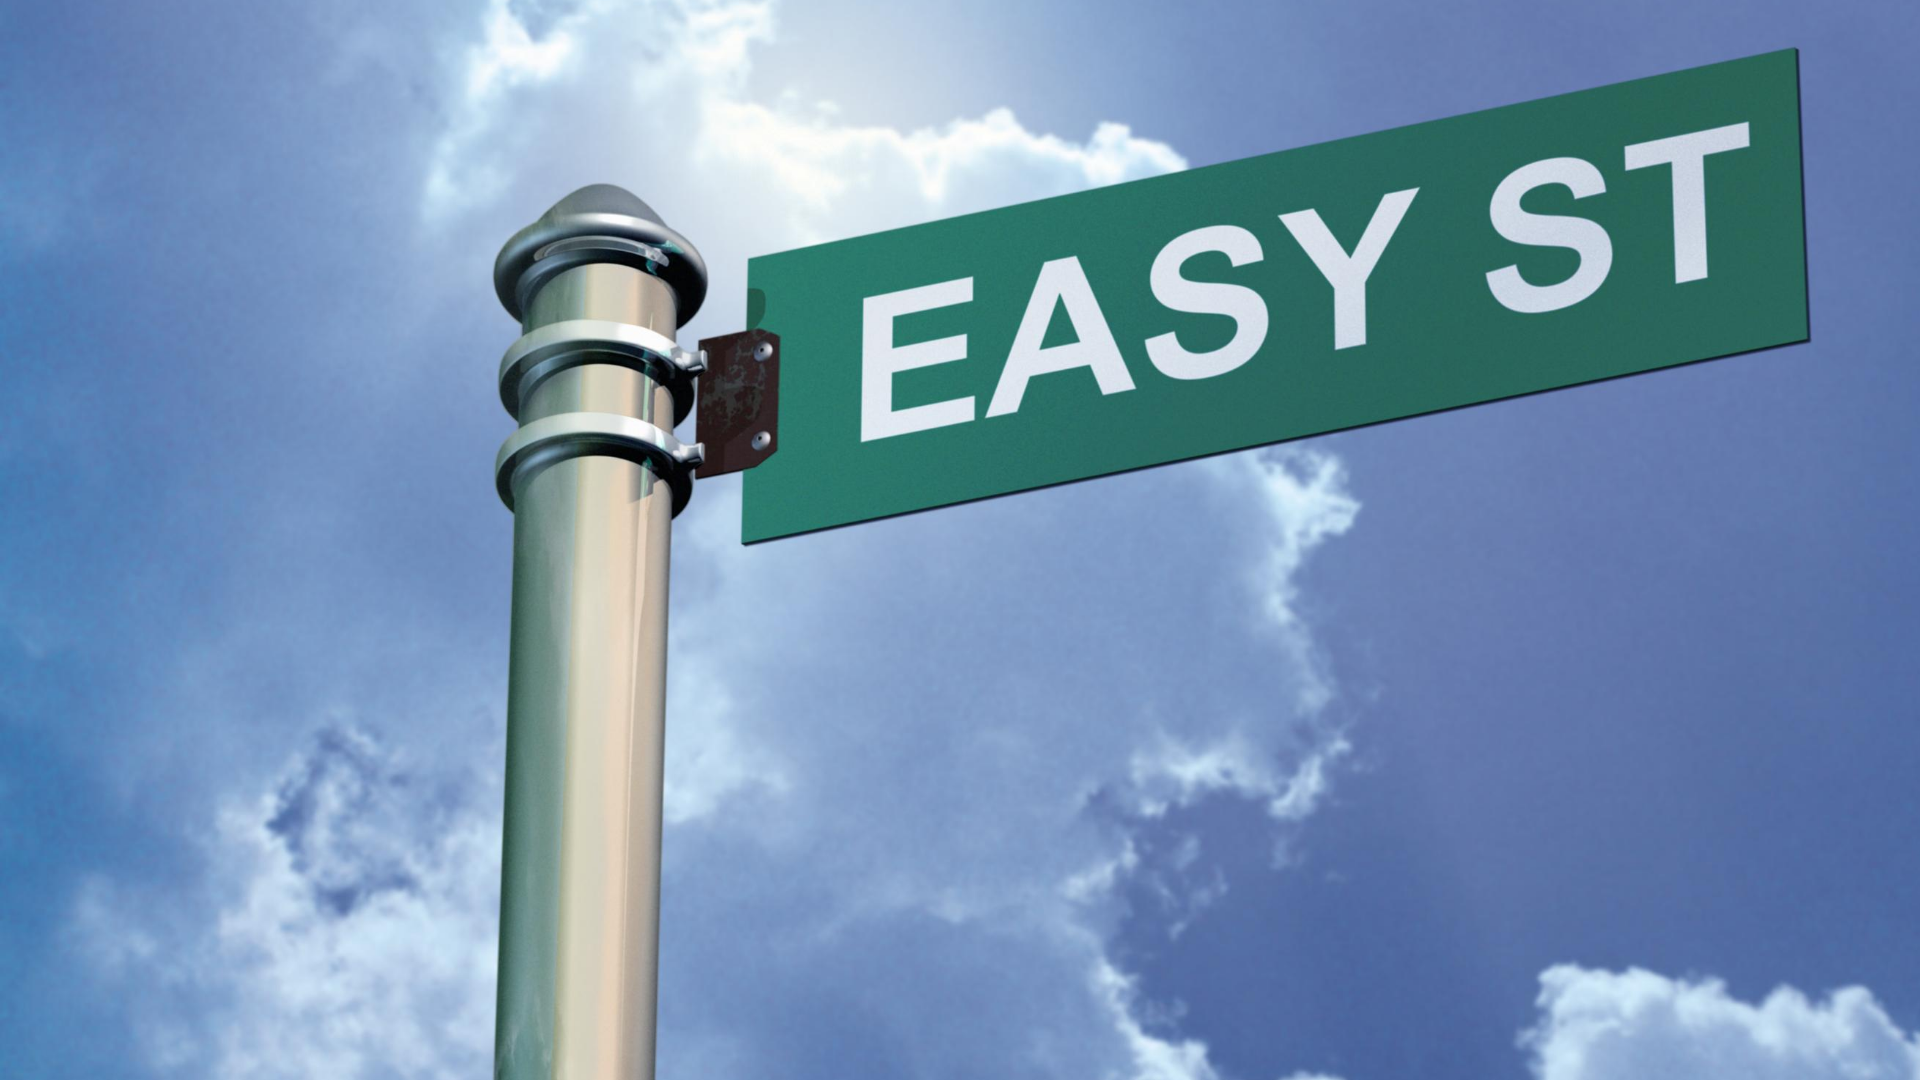 """A pole with a green street sign. White text on the sign says, """"easy street"""""""